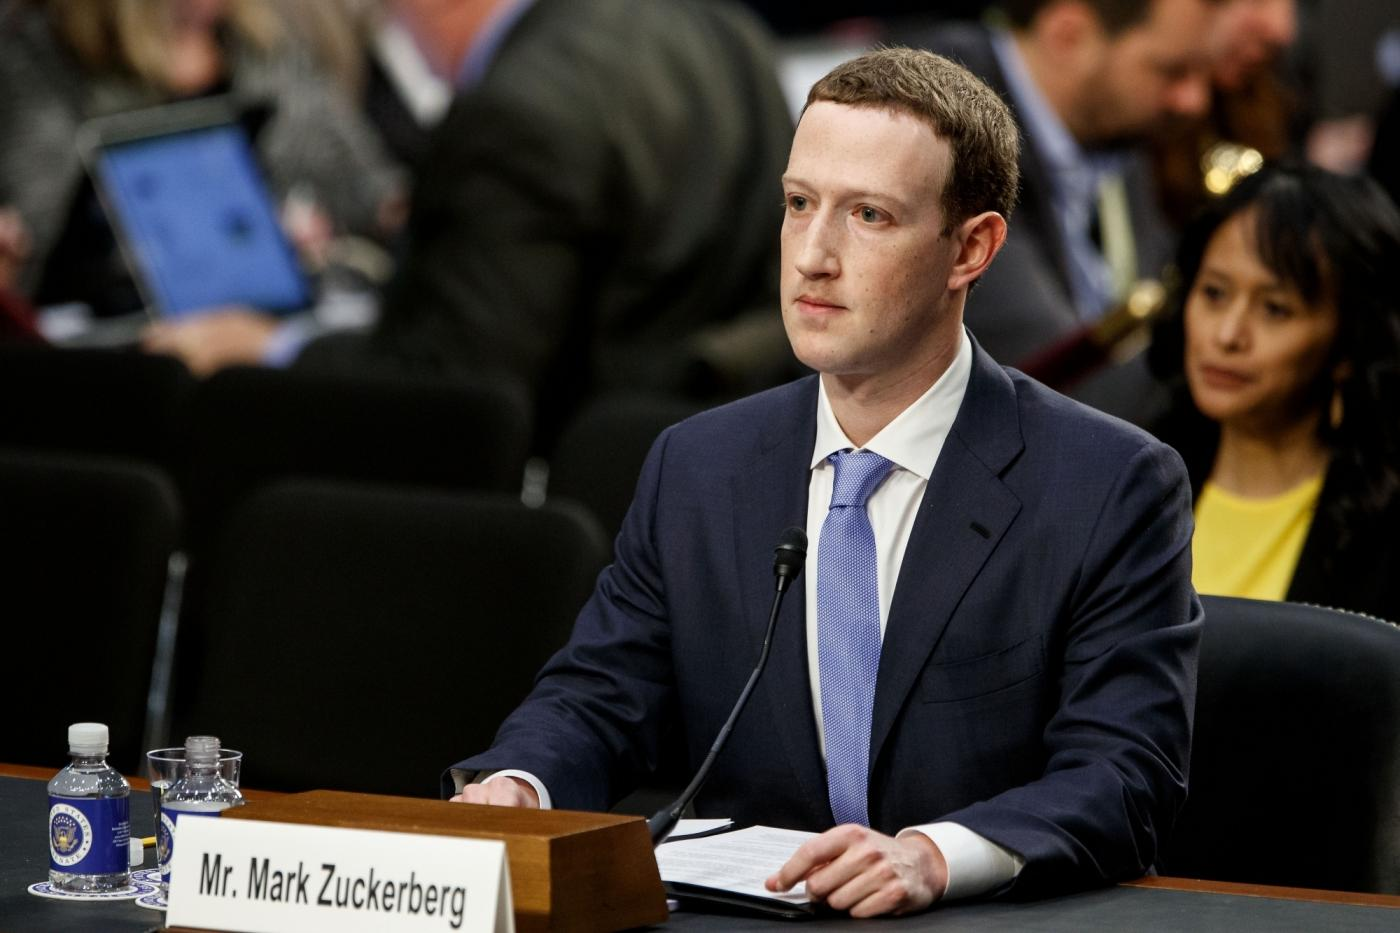 "WASHINGTON, April 10, 2018 (Xinhua) -- Facebook CEO Mark Zuckerberg testifies at a joint hearing of the Senate Judiciary and Commerce committees on Capitol Hill in Washington D.C., United States, on April 10, 2018. Facebook CEO Mark Zuckerberg told Congress in written testimony on Monday that he is ""responsible for"" not preventing the social media platform from being used for harm, including fake news, foreign interference in elections and hate speech. (Xinhua/Ting Shen/IANS) by ."